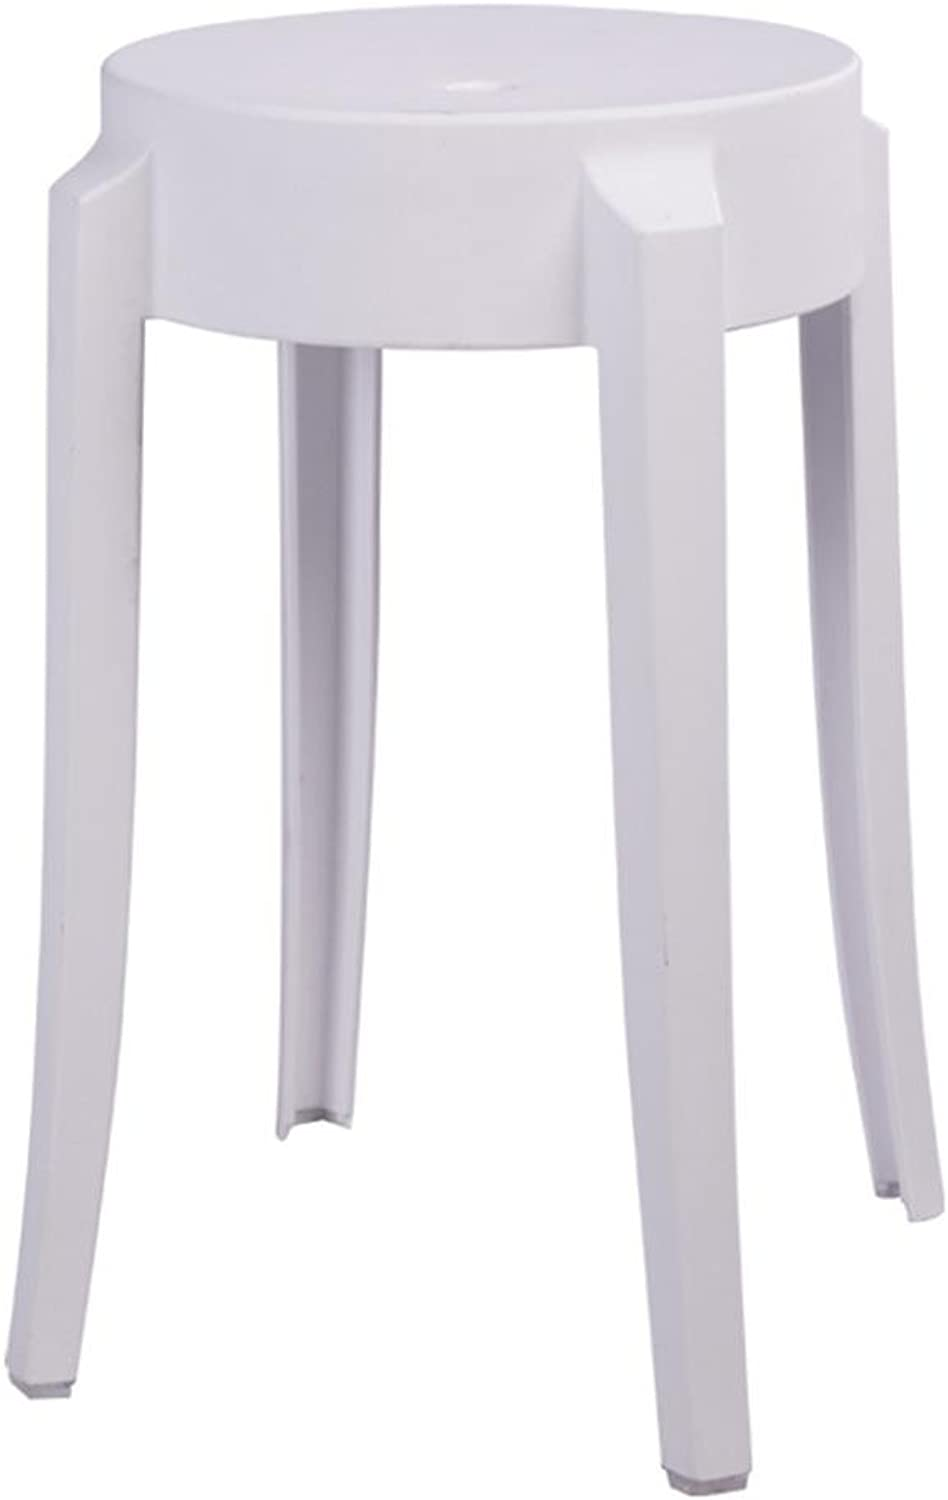 Creative Table Stool Thicken Plastic Stool Computer Chair Strong eat Office Multiple Colour Can be superimposed 29  29  46, White [Thickening New Engineering Material],Strong